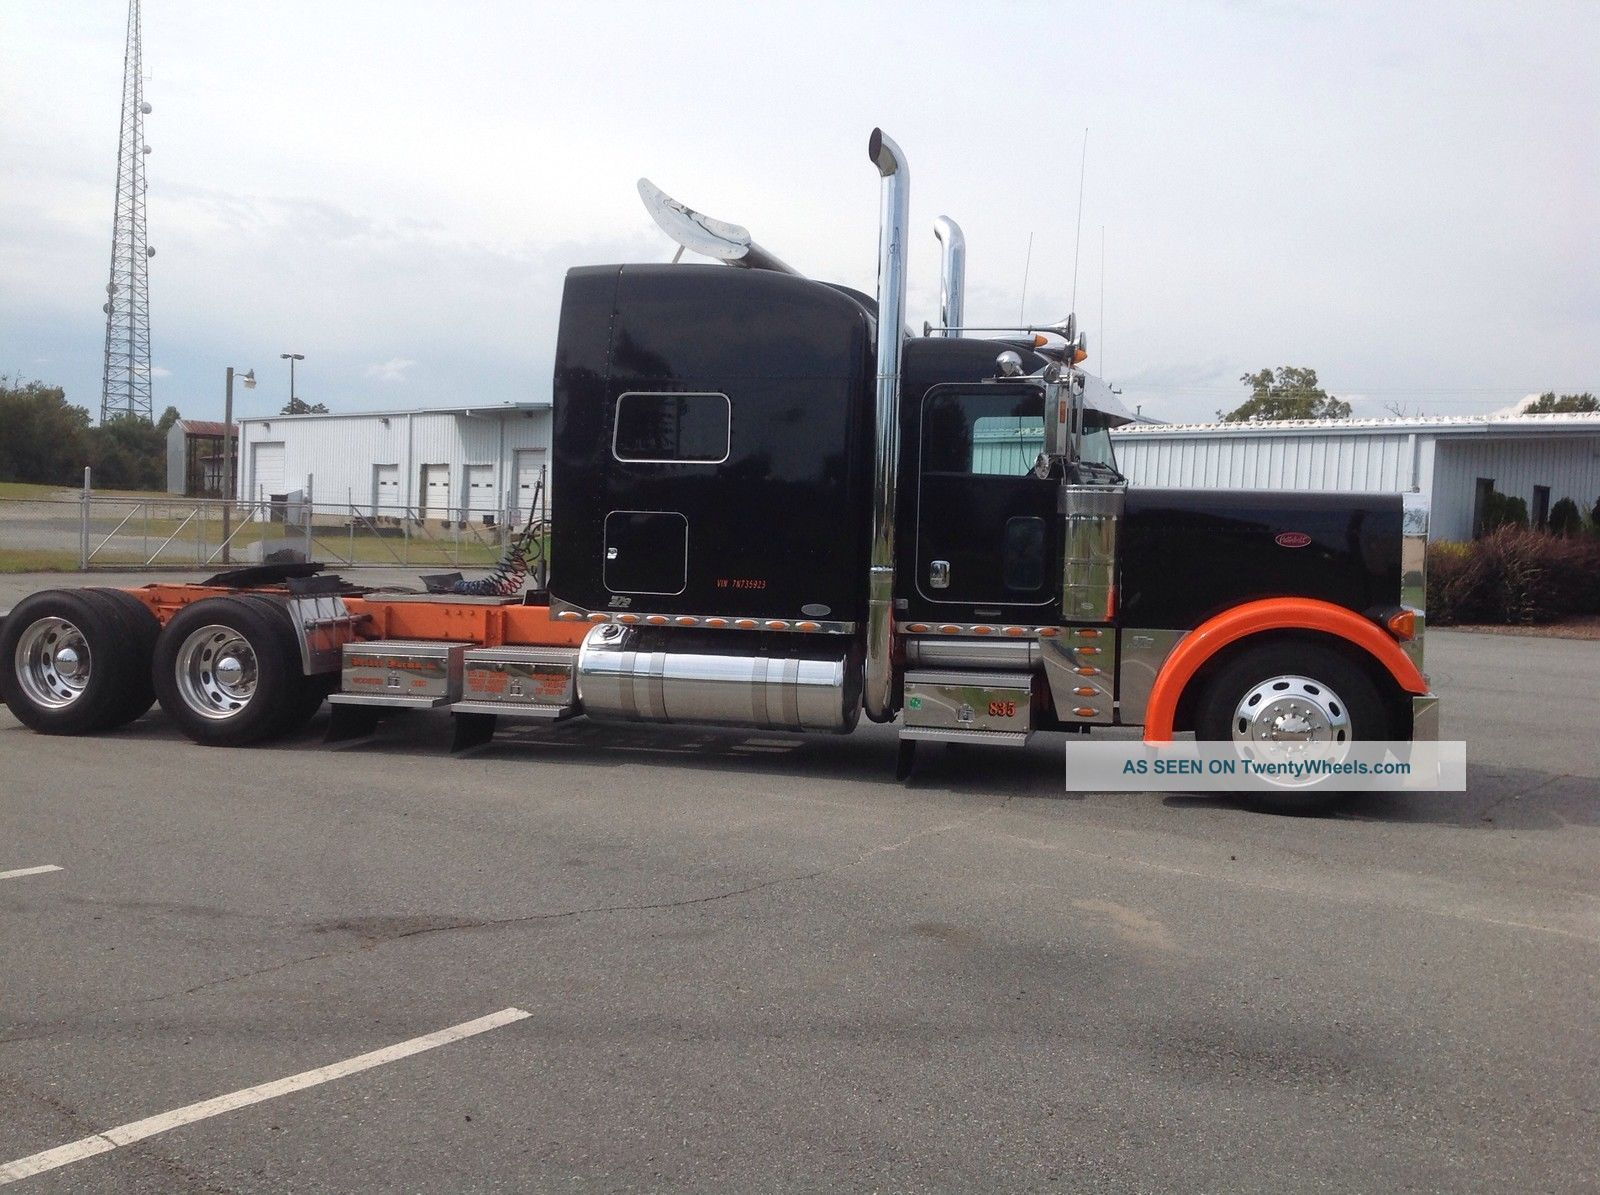 379 Peterbilt Day Cab For Sale On Craigslist By Owner | Autos Post